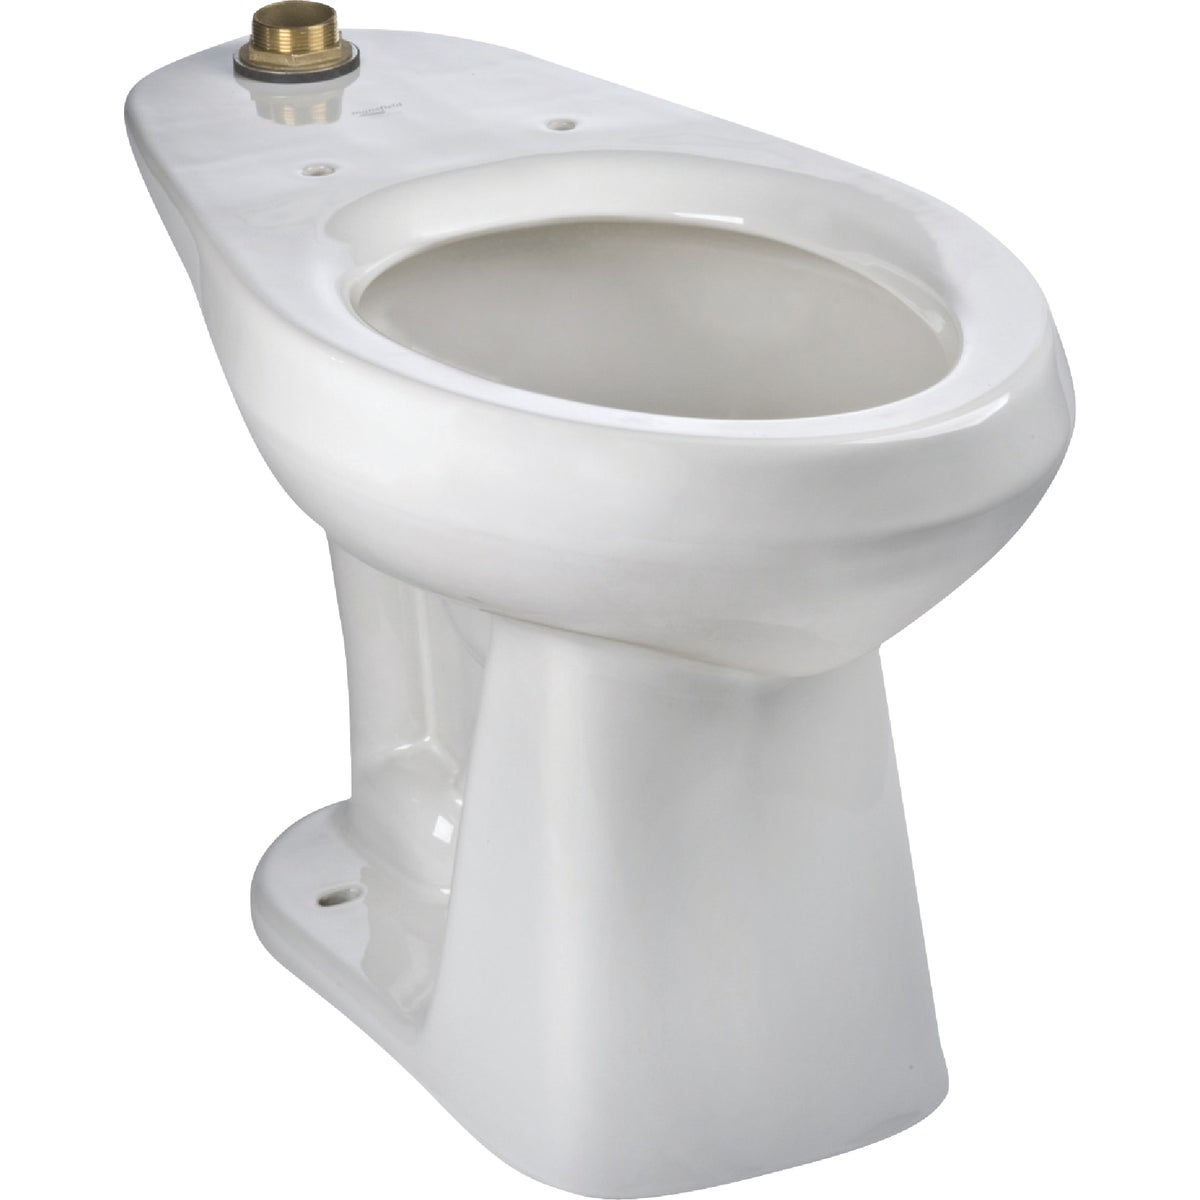 WHITE COMM TOILET BOWL - 131900001 by Mansfield Plumbing